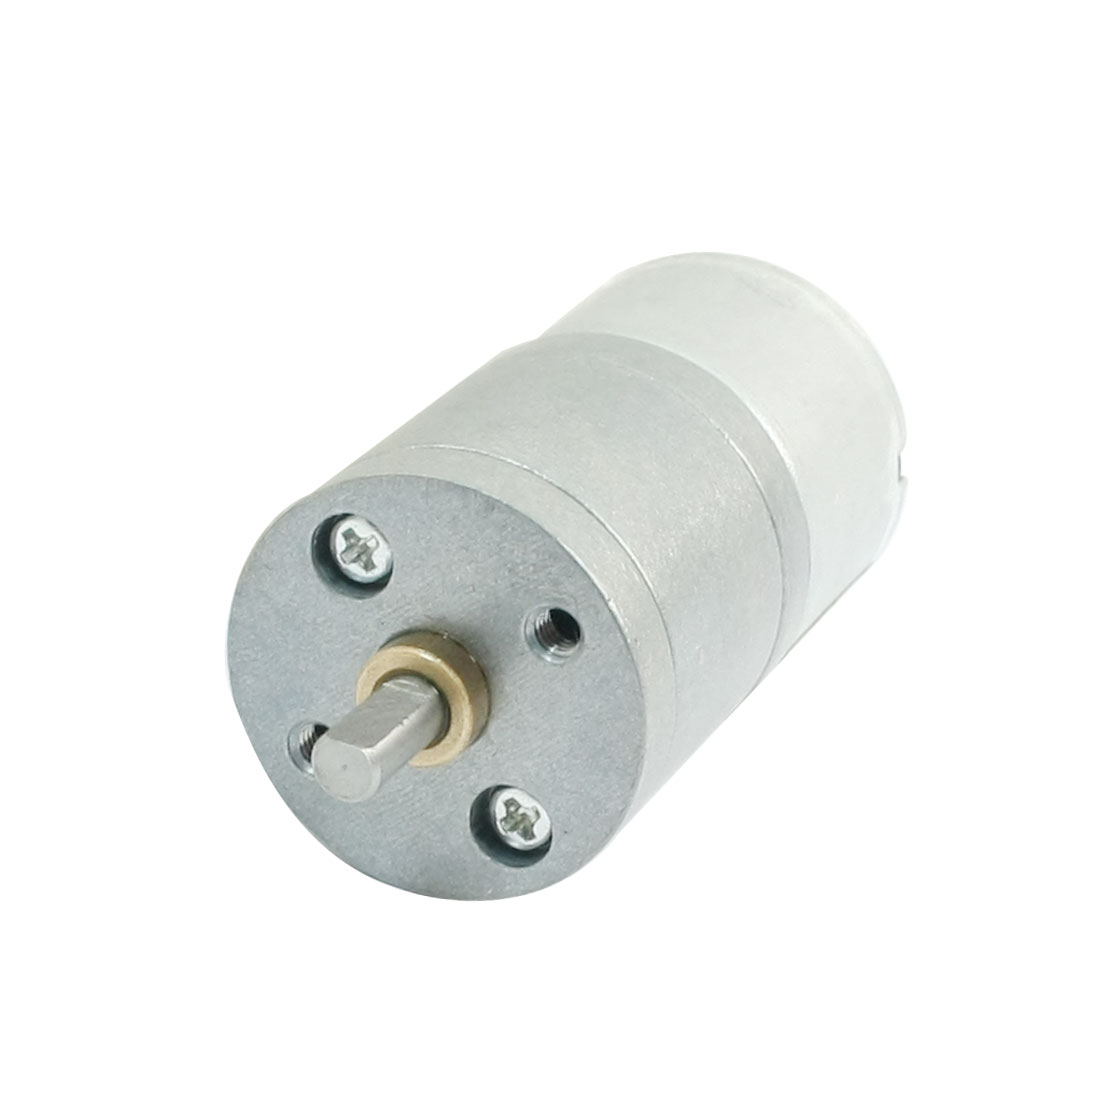 DC12V-50RPM-2-Pin-Solder-Cylindrical-Gearhead-Electric-Motor-25GA310-165